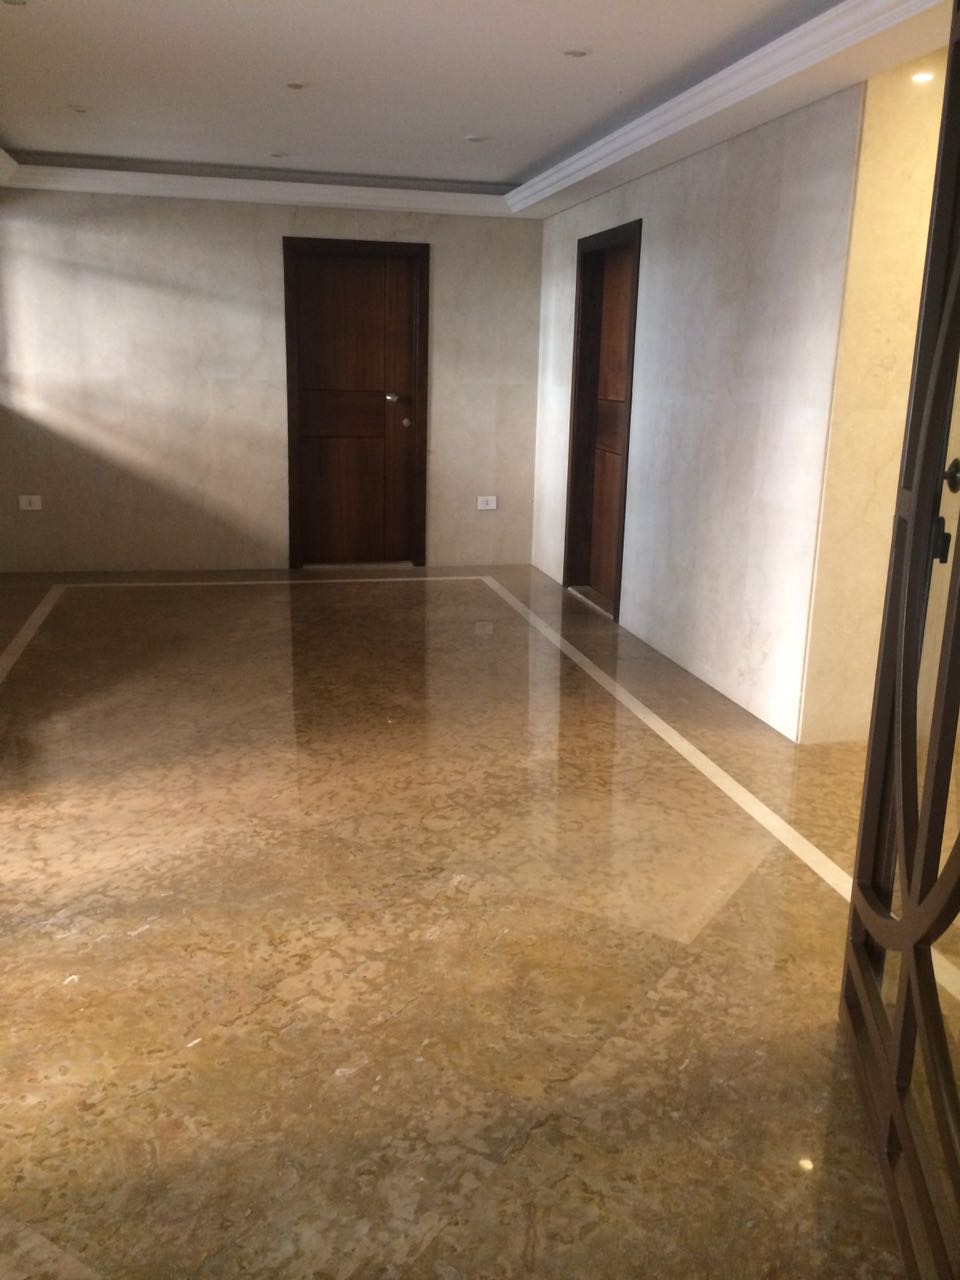 Apartment for sale in verdun beirut lebanon, buy sell properties in verdun beirut lebanon, real estate in lebanon